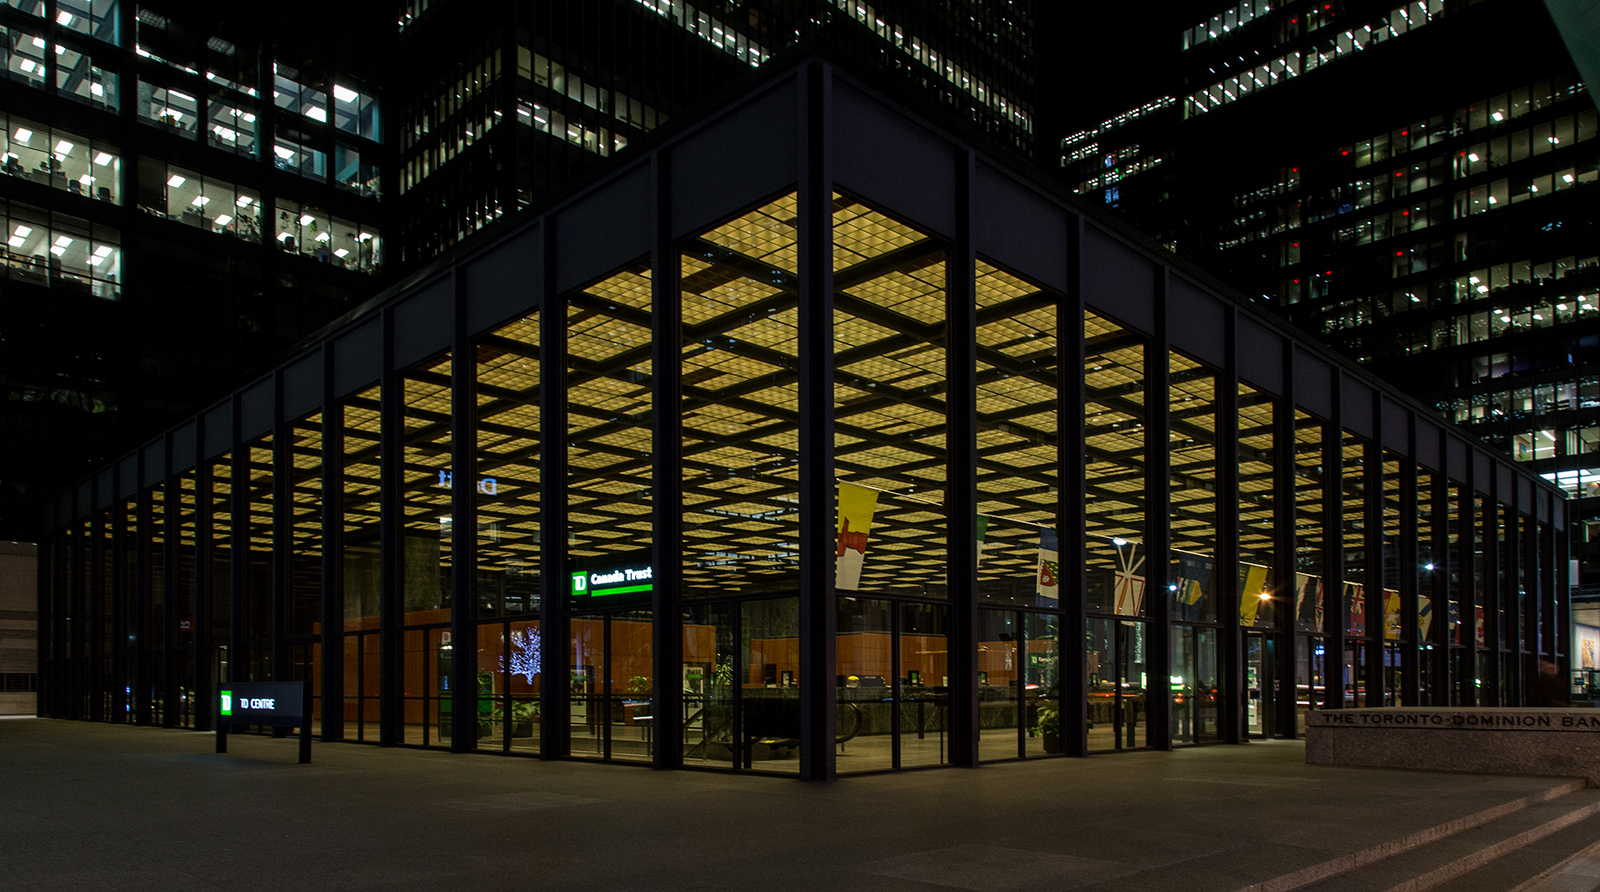 Photo 20131121. Mies van der Rohe's banking pavilion at the TD Centre, Toronto.